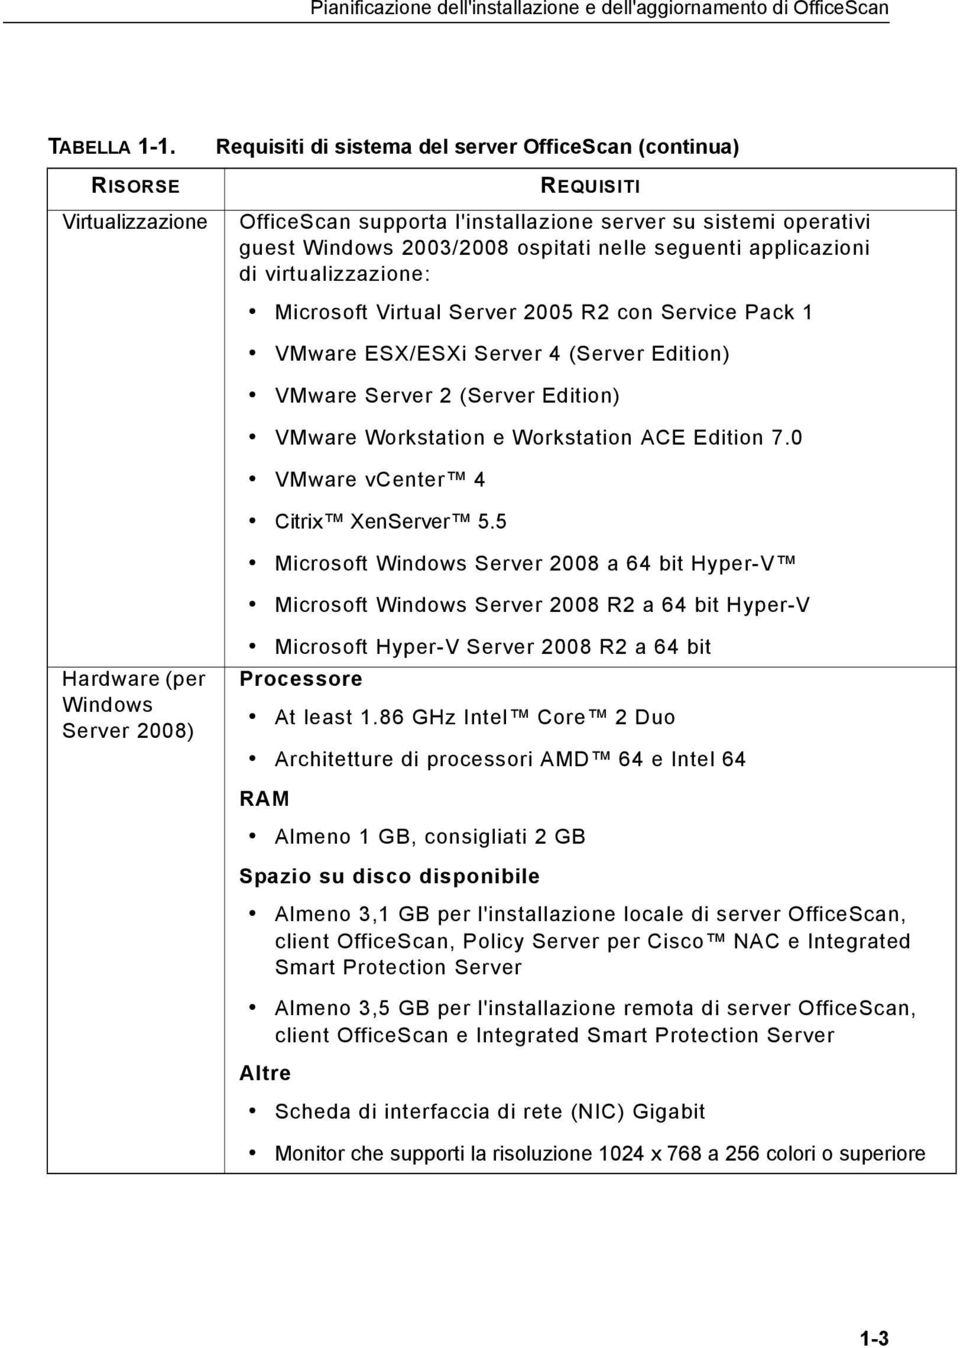 seguenti applicazioni di virtualizzazione: Microsoft Virtual Server 2005 R2 con Service Pack 1 VMware ESX/ESXi Server 4 (Server Edition) VMware Server 2 (Server Edition) VMware Workstation e